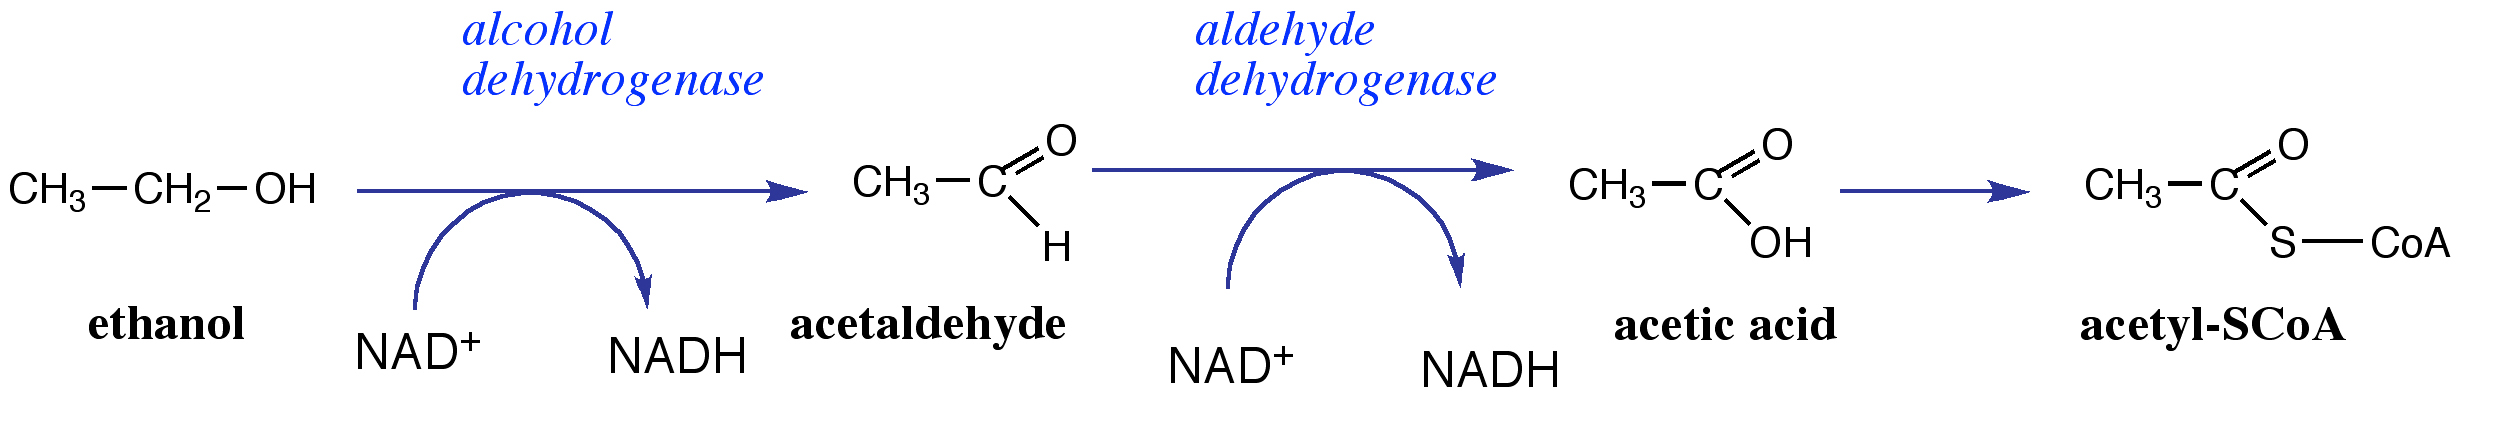 alcohol dehydrogenase adh reaction The alcohol dehydrogenase (adh) 3 -hsd is also called dihydrodiol dehydrogenase this reaction sequesters the pre-bay dihydrodiols of polycyclic aromatic hydrocarbons away from their critical toxification pathway to the ultimate carcinogenic dihydrodiol bay-region epoxides to produce.